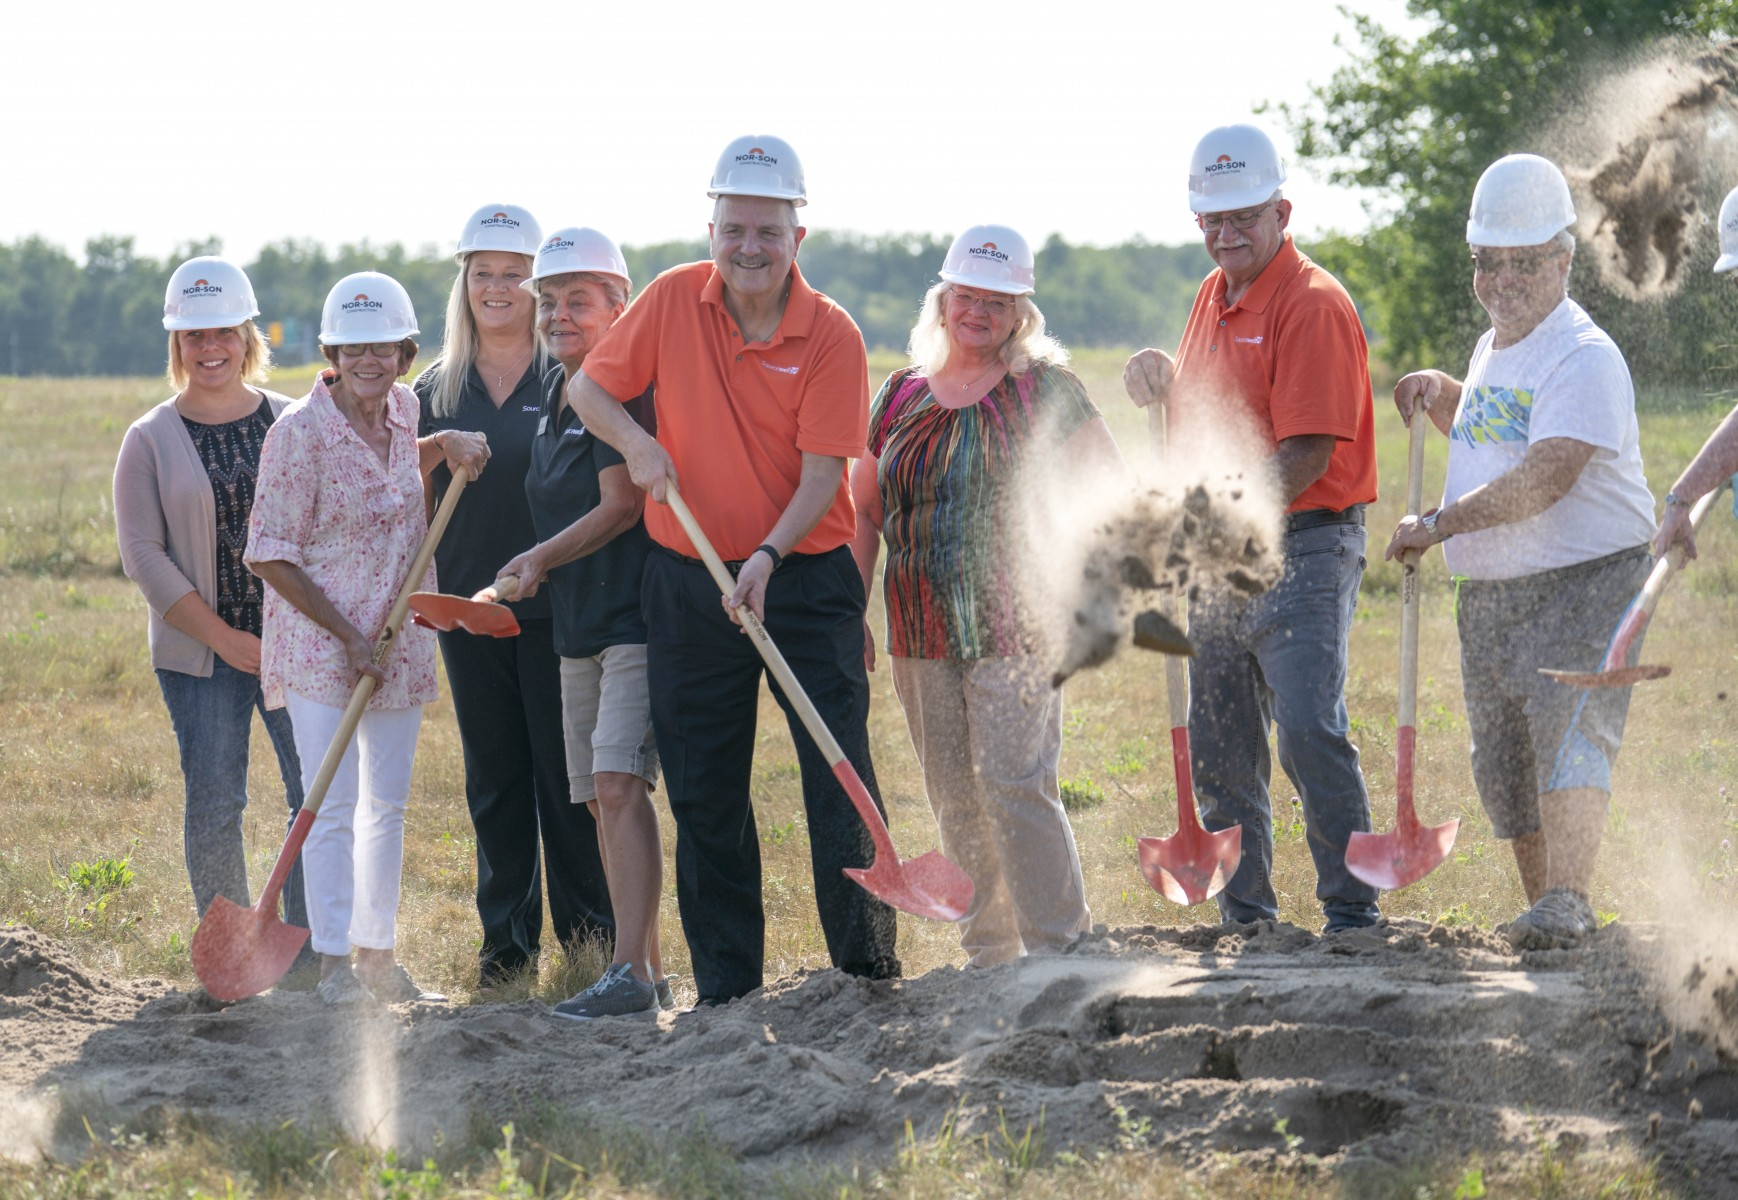 Community leaders gather for the Mid-State Education District groundbreaking event in Little Falls, Aug. 15. A similar scene played out earlier in the summer in Wadena as ground broke for a Setting IV facility in the Freshwater Education District.